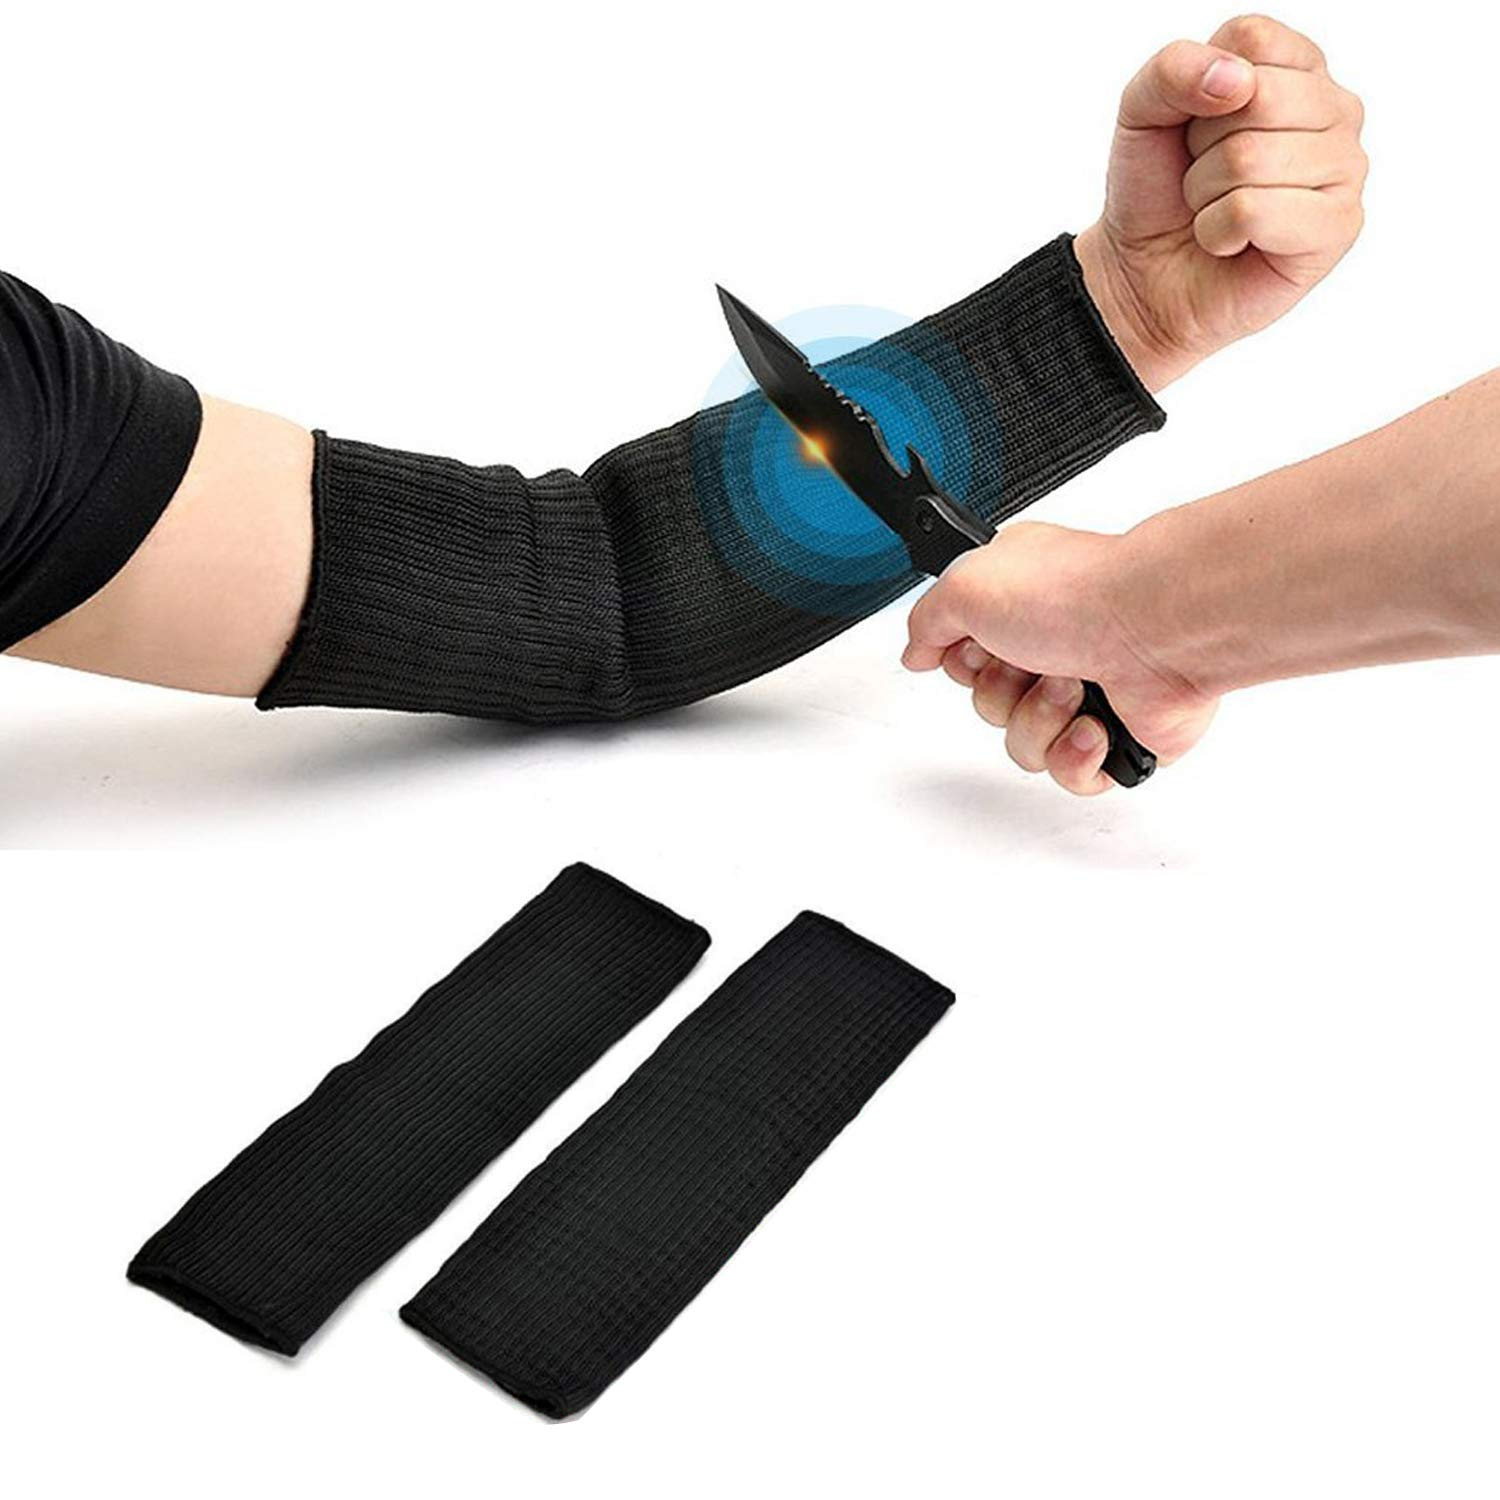 Arm Protective Sleeves, Kevlar Sleeves Cut Resistant Heat Resistant Sleeve, Anti Abrasion Safety Armband for Garden Kitchen Work 1 Pair(Black)